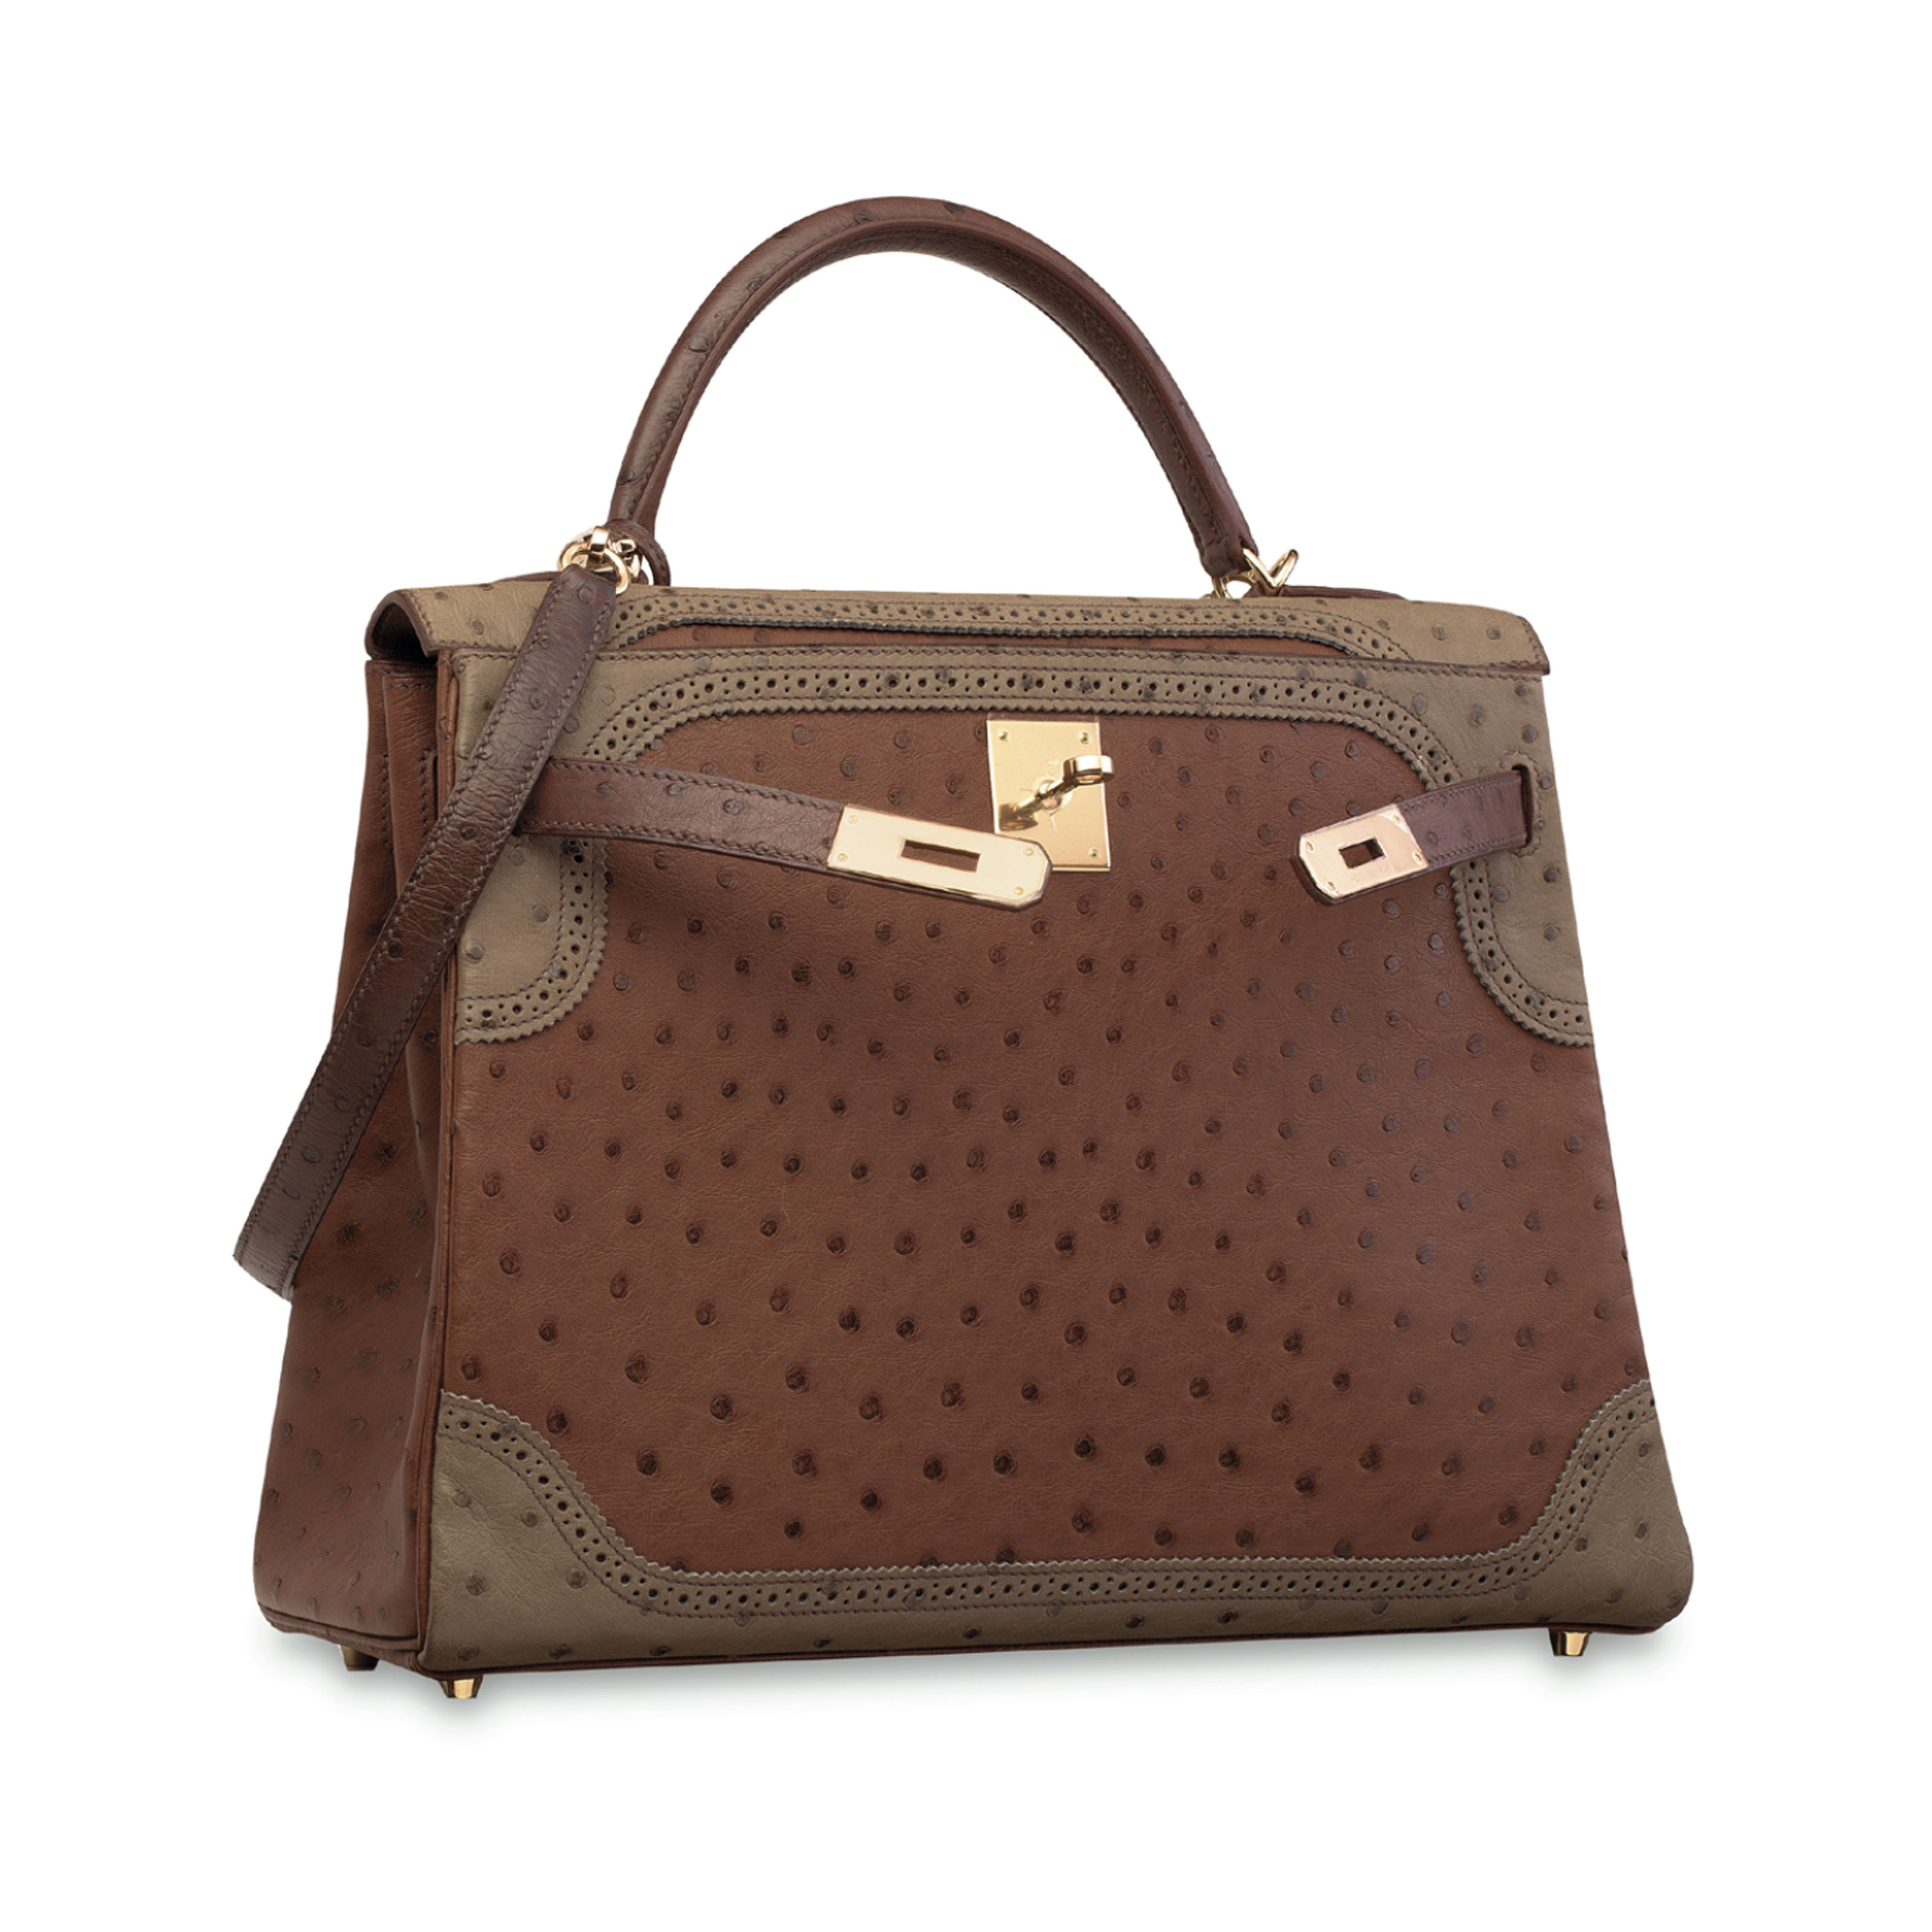 A LIMITED EDITION ÉTRUSQUE, MOUSSE & MARRON FONCÉ OSTRICH GHLLIES KELLY 32 WITH PERMABRASS HARDWARE